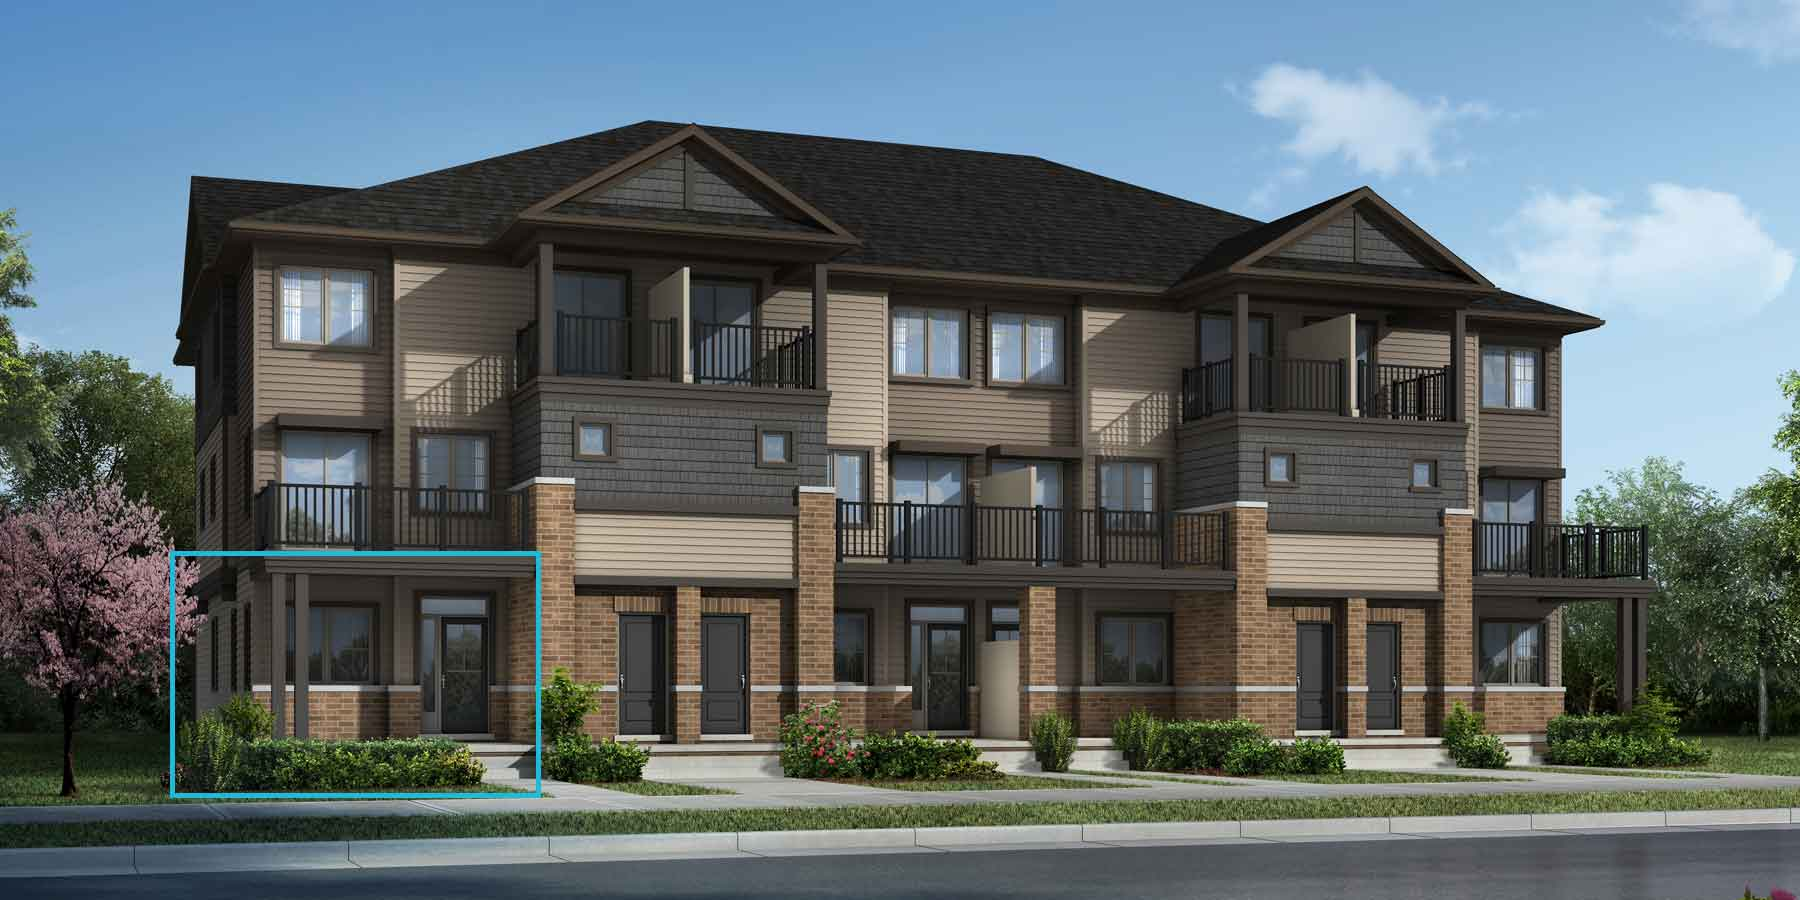 Poppy Plan TownHomes at Promenade in Barrhaven Ontario by Mattamy Homes